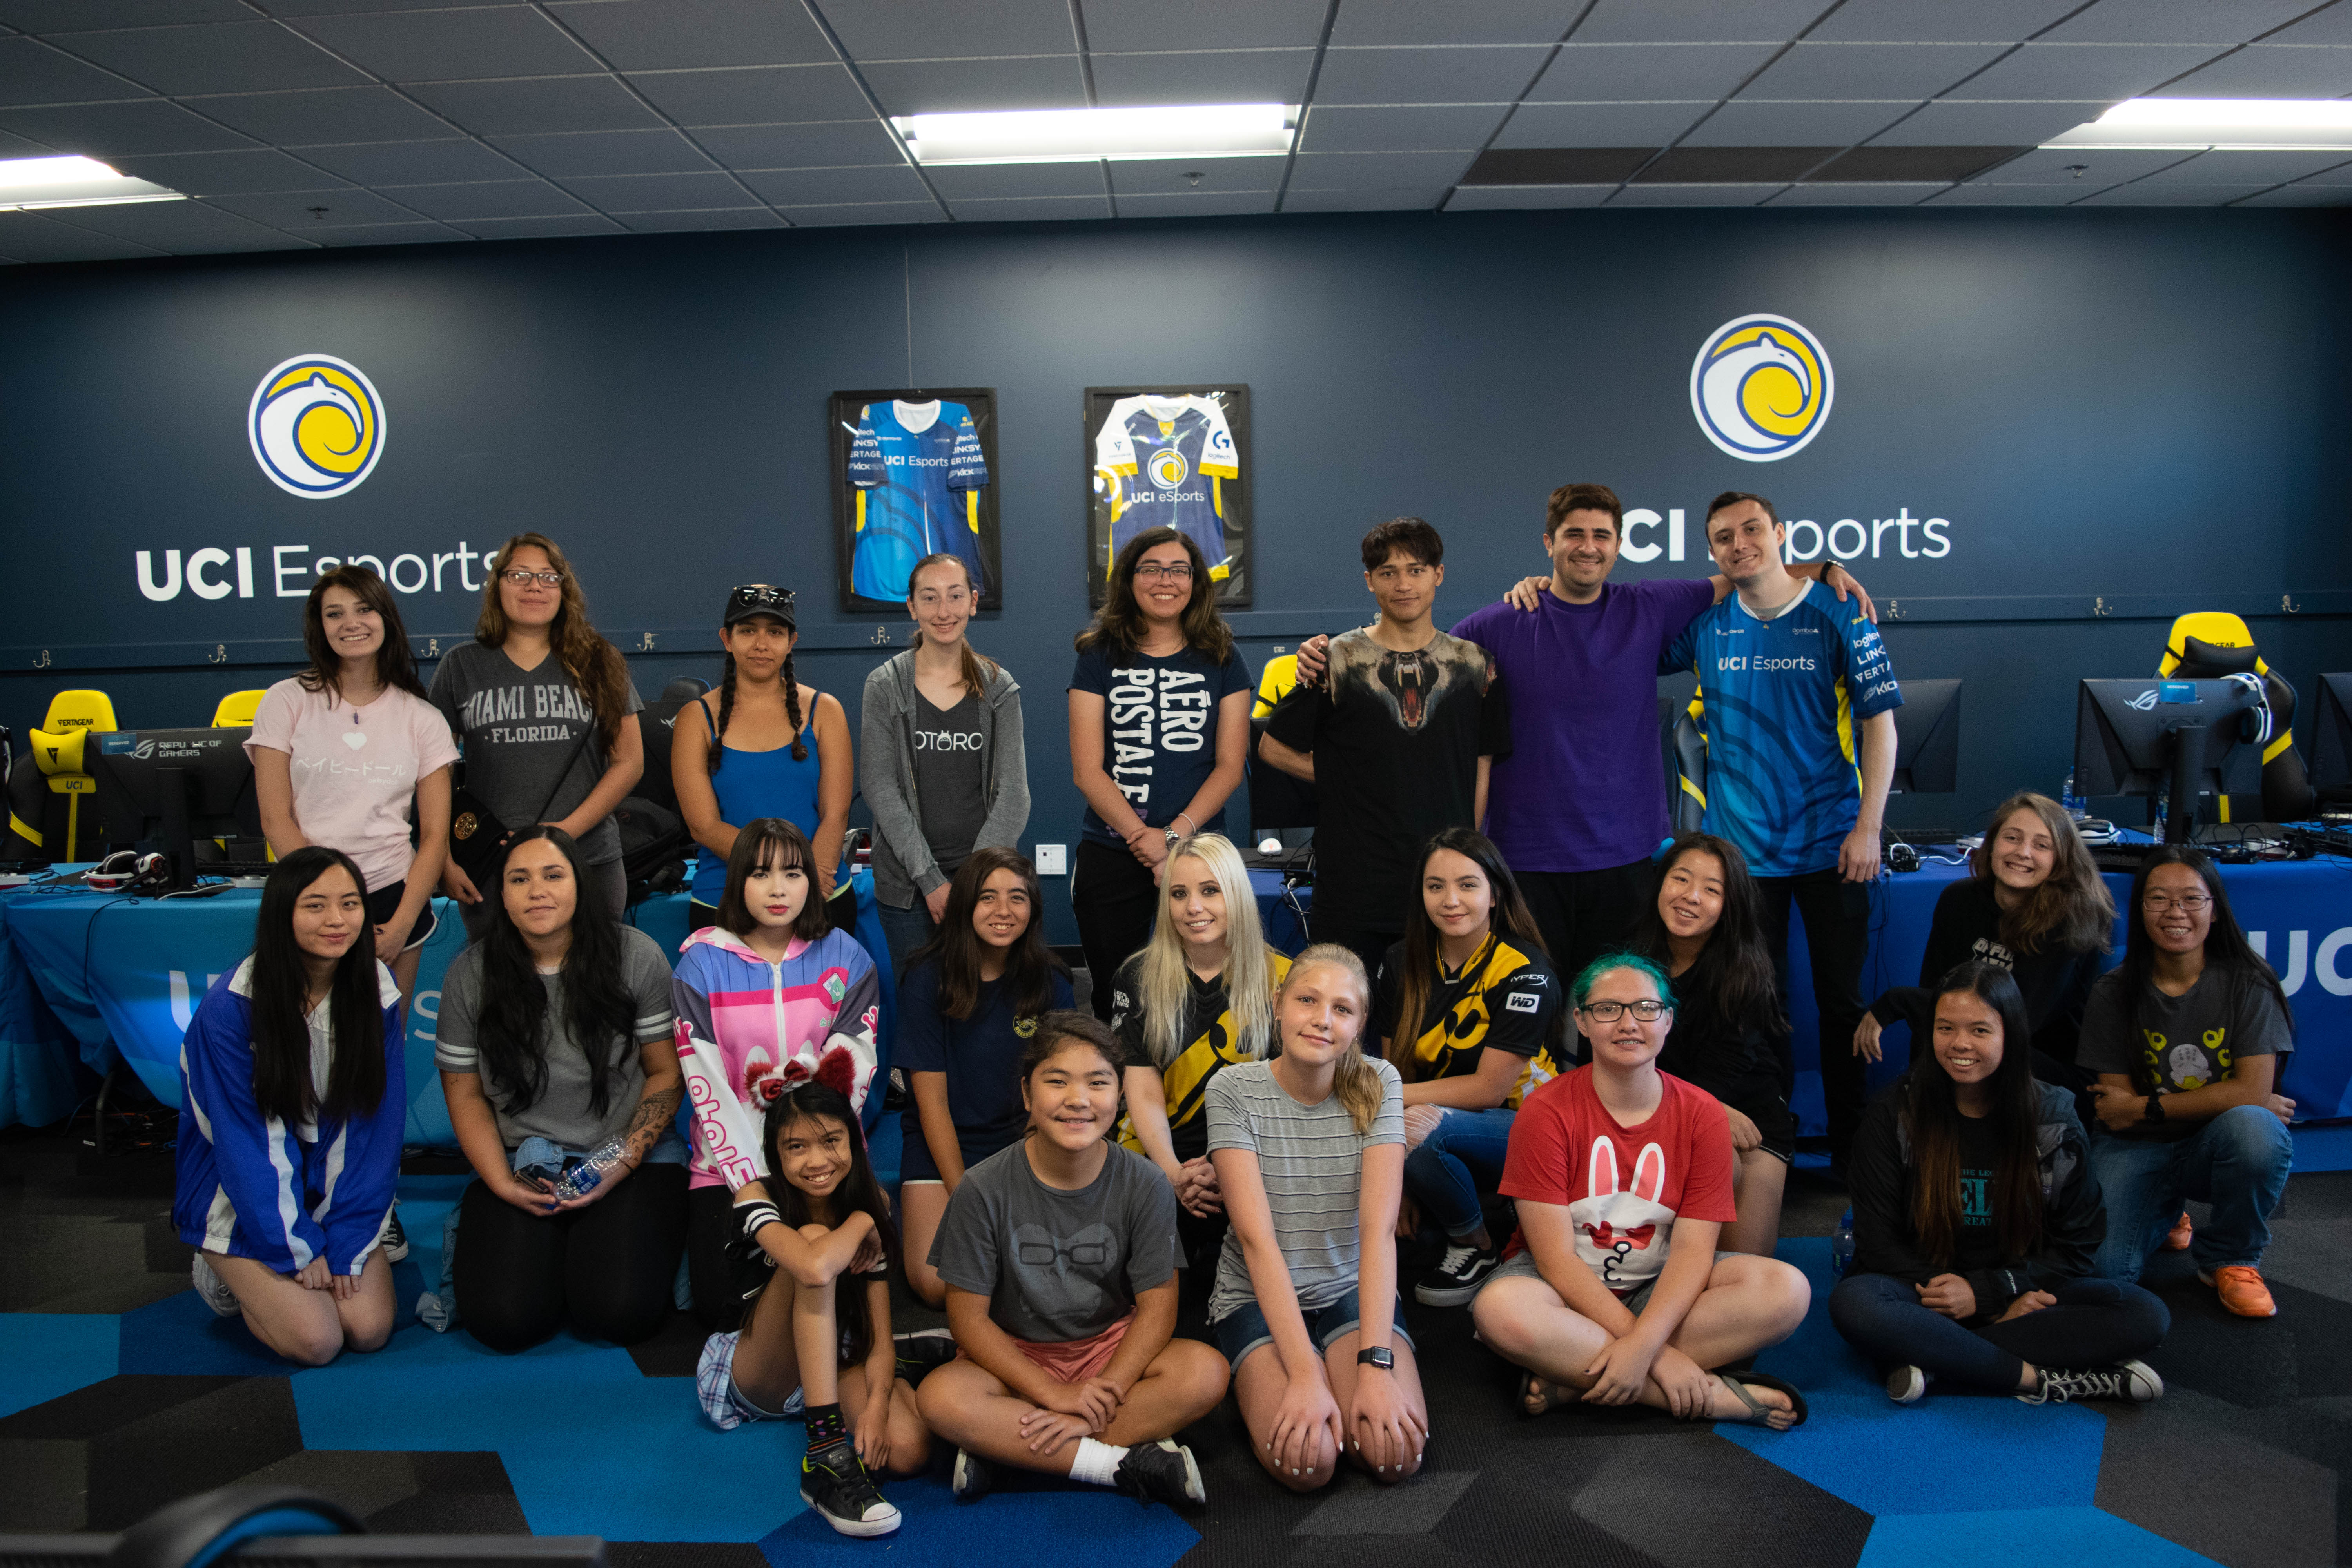 Team Dignitas' CS:GO team and UCI's CS:GO club team joined forces to teach campers about competitive gaming.